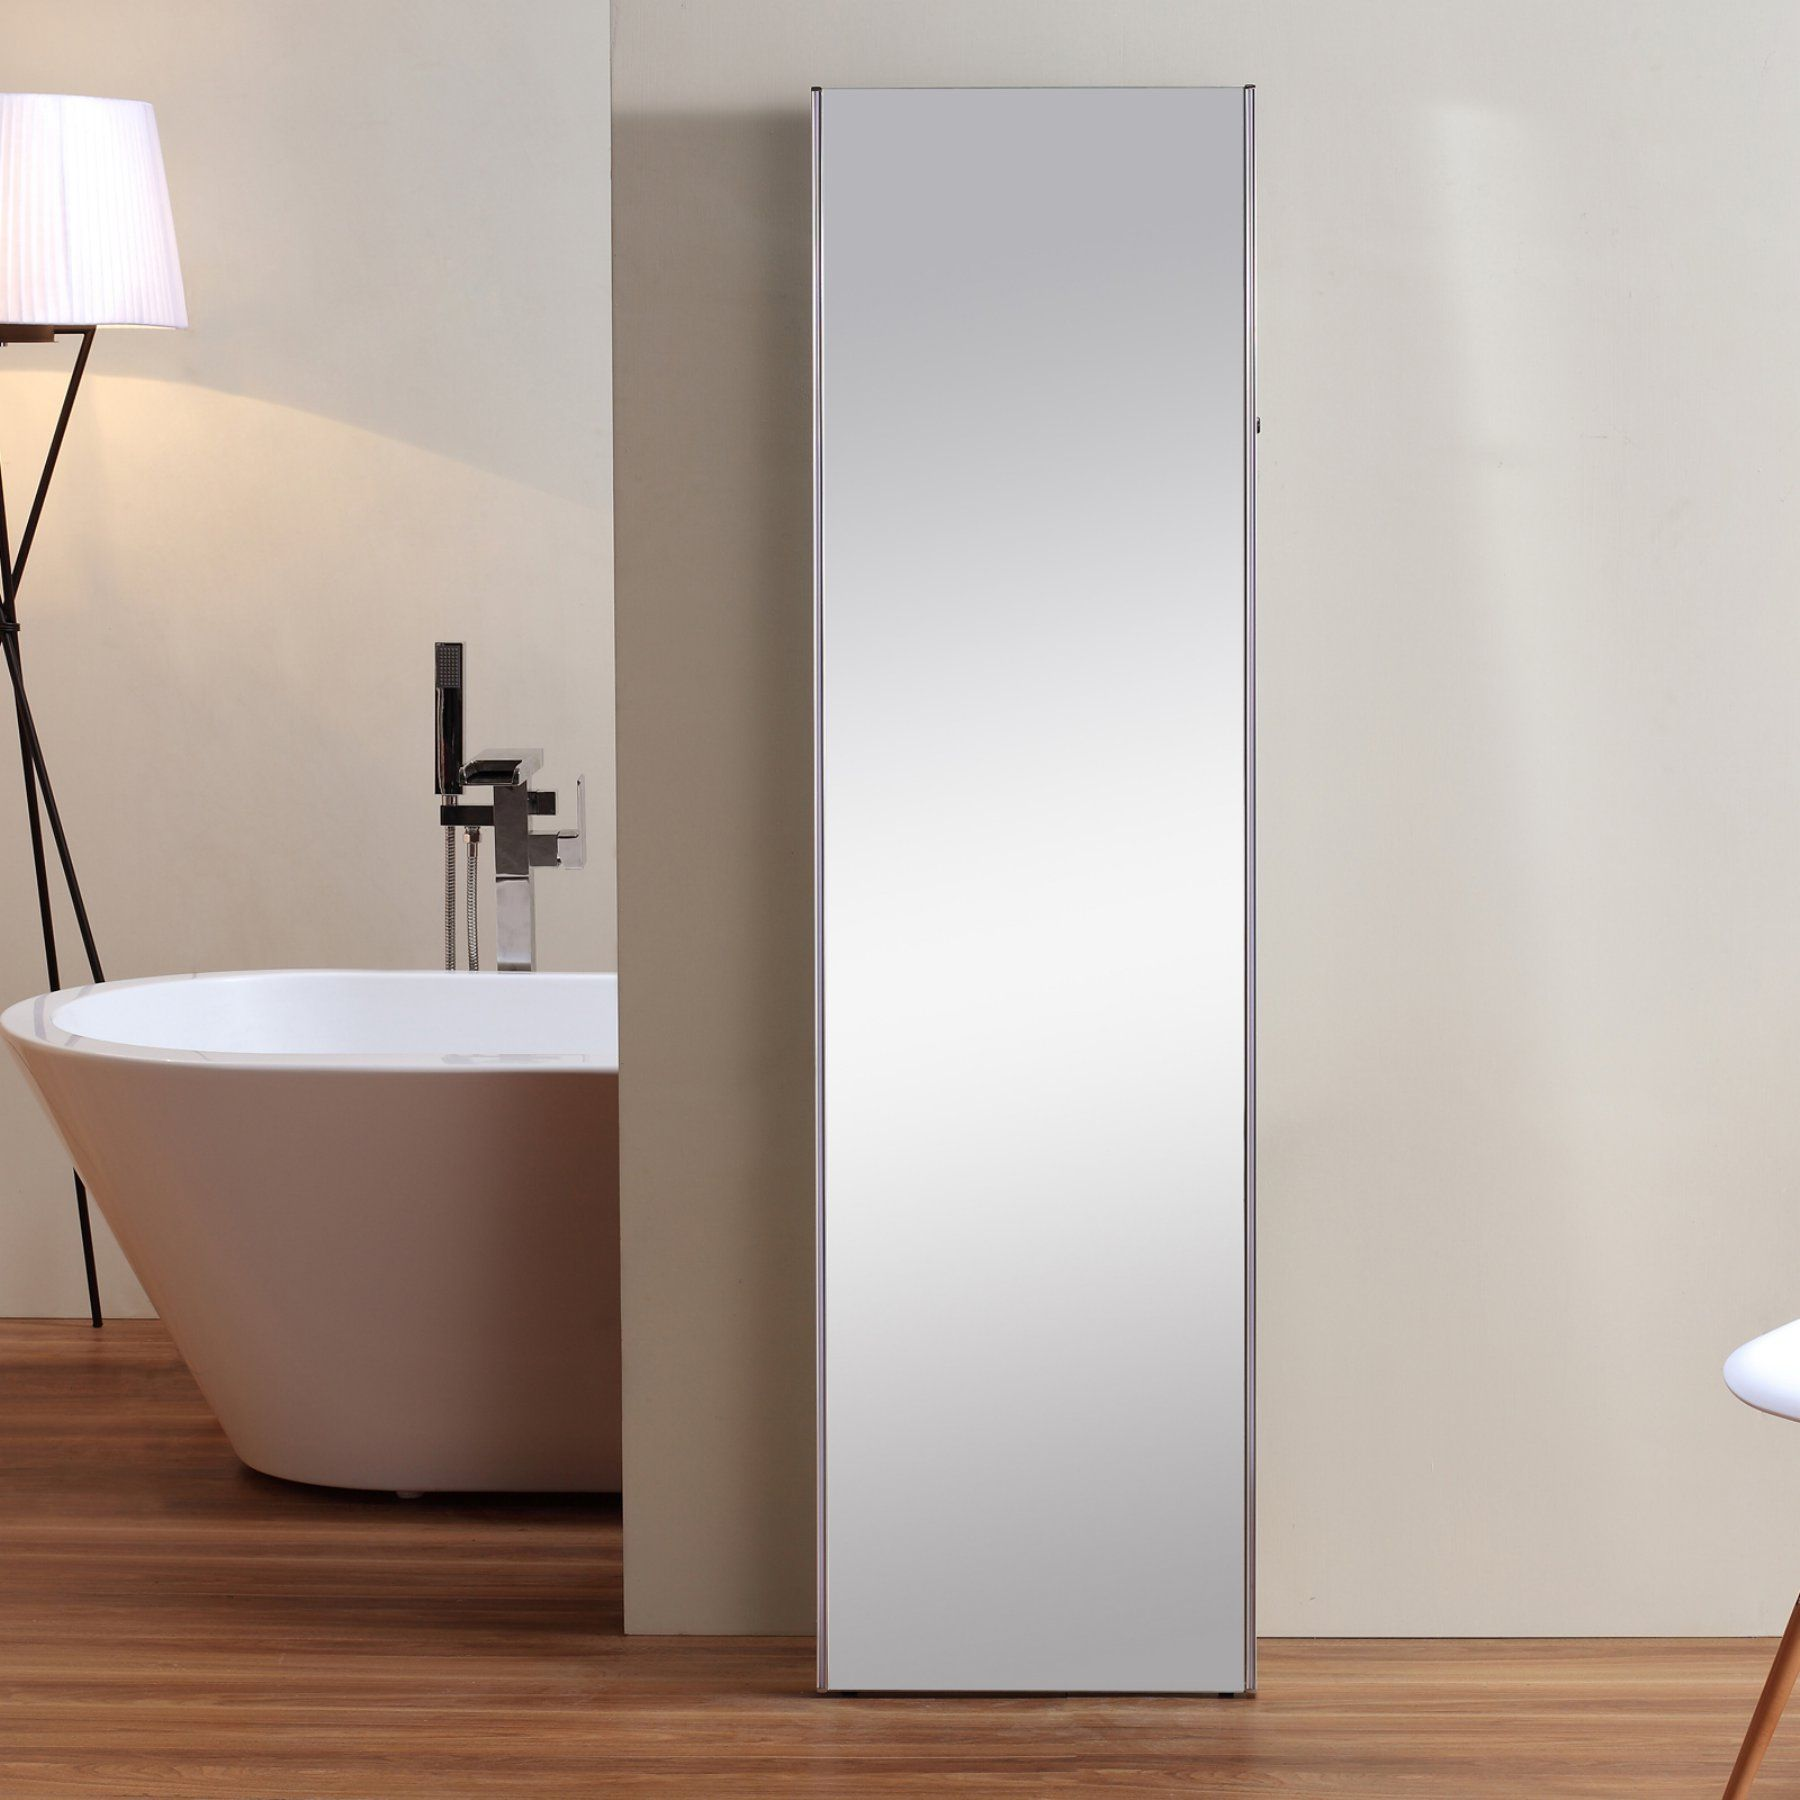 OVE Decors Tycho LED Bathroom Mirror TYCHO LED MIRROR Products